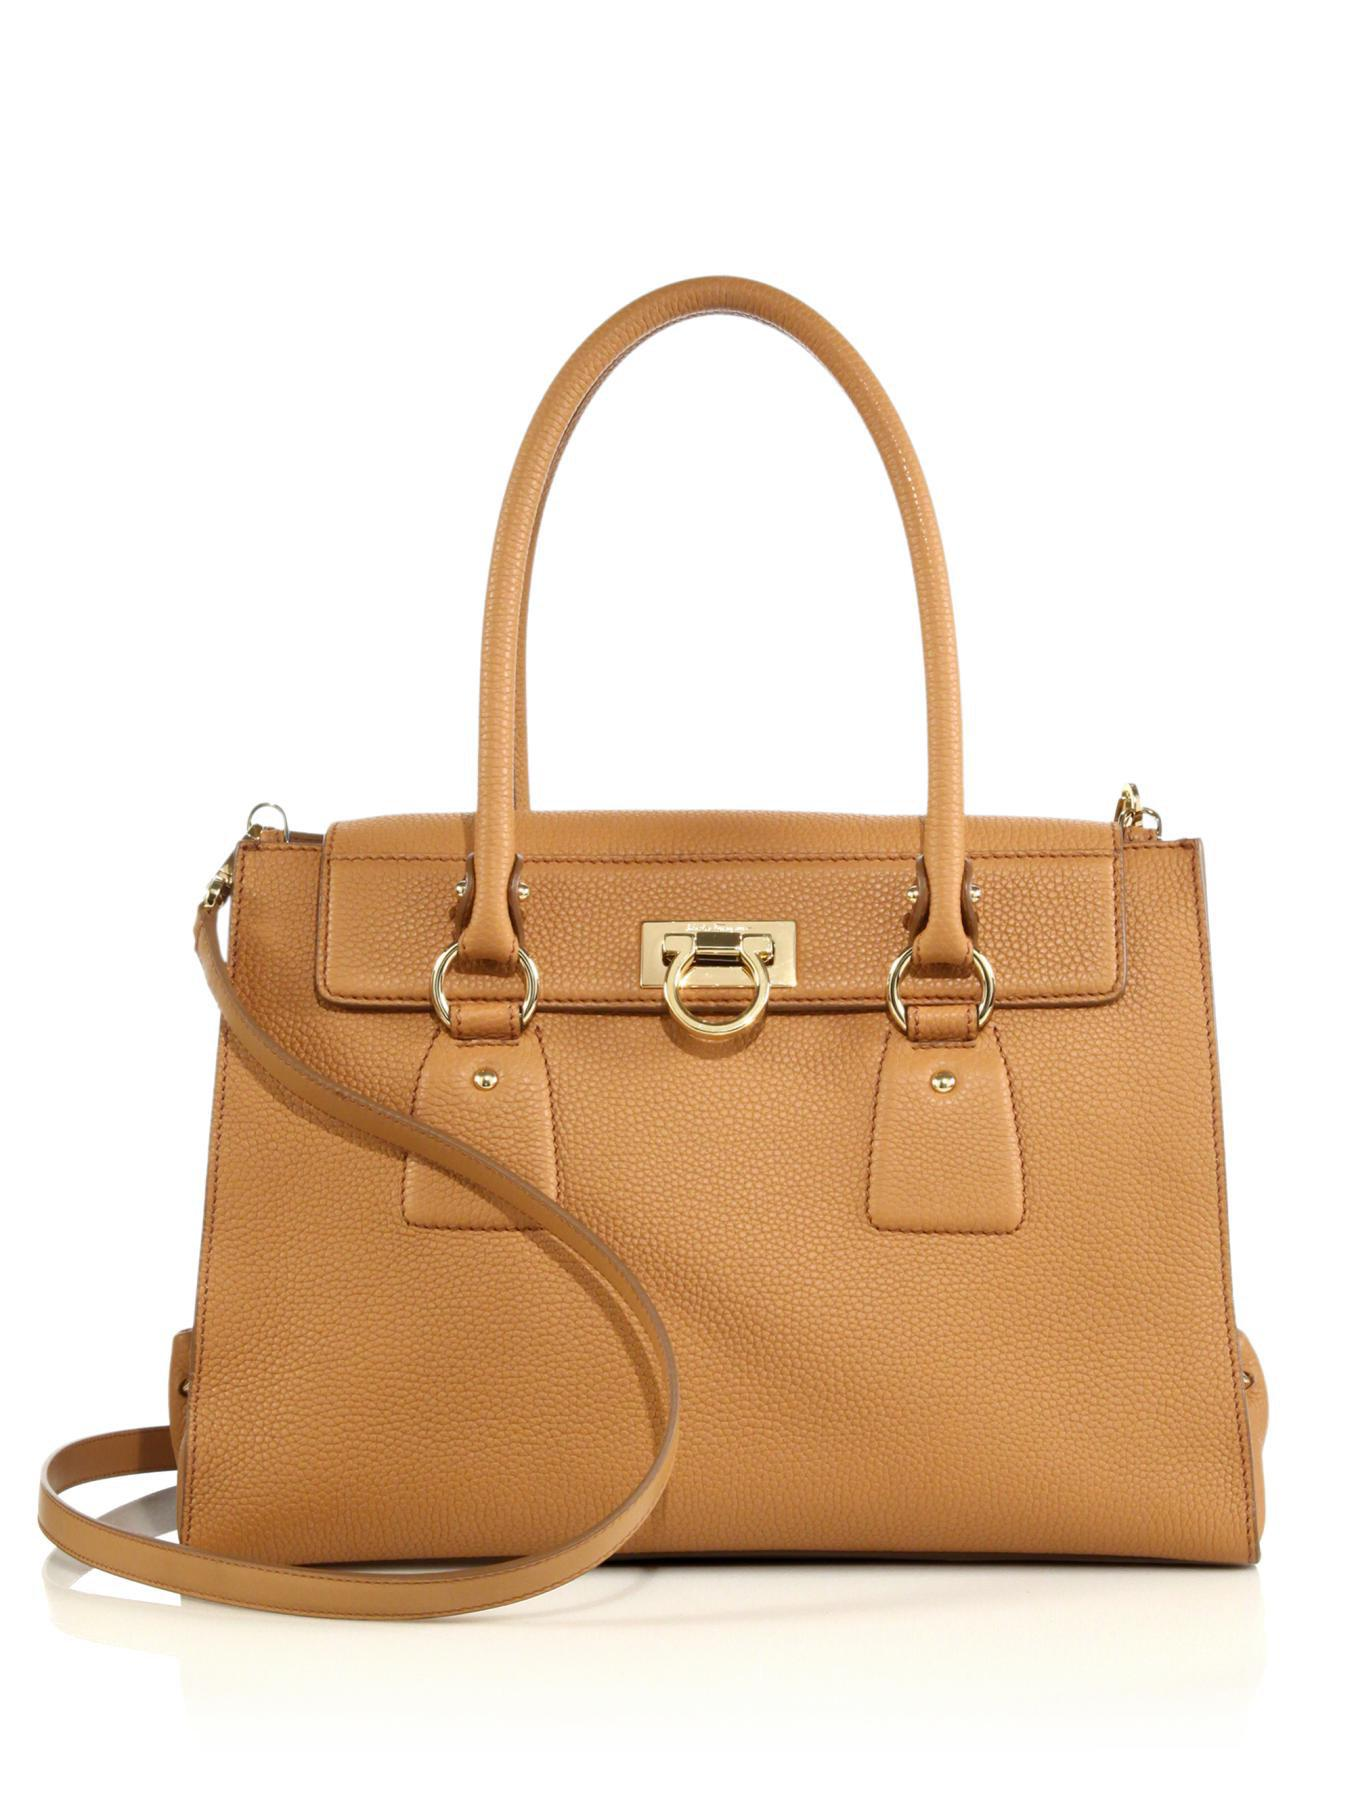 0f242b093e7 Lyst - Ferragamo Lotty Medium Satchel in Natural